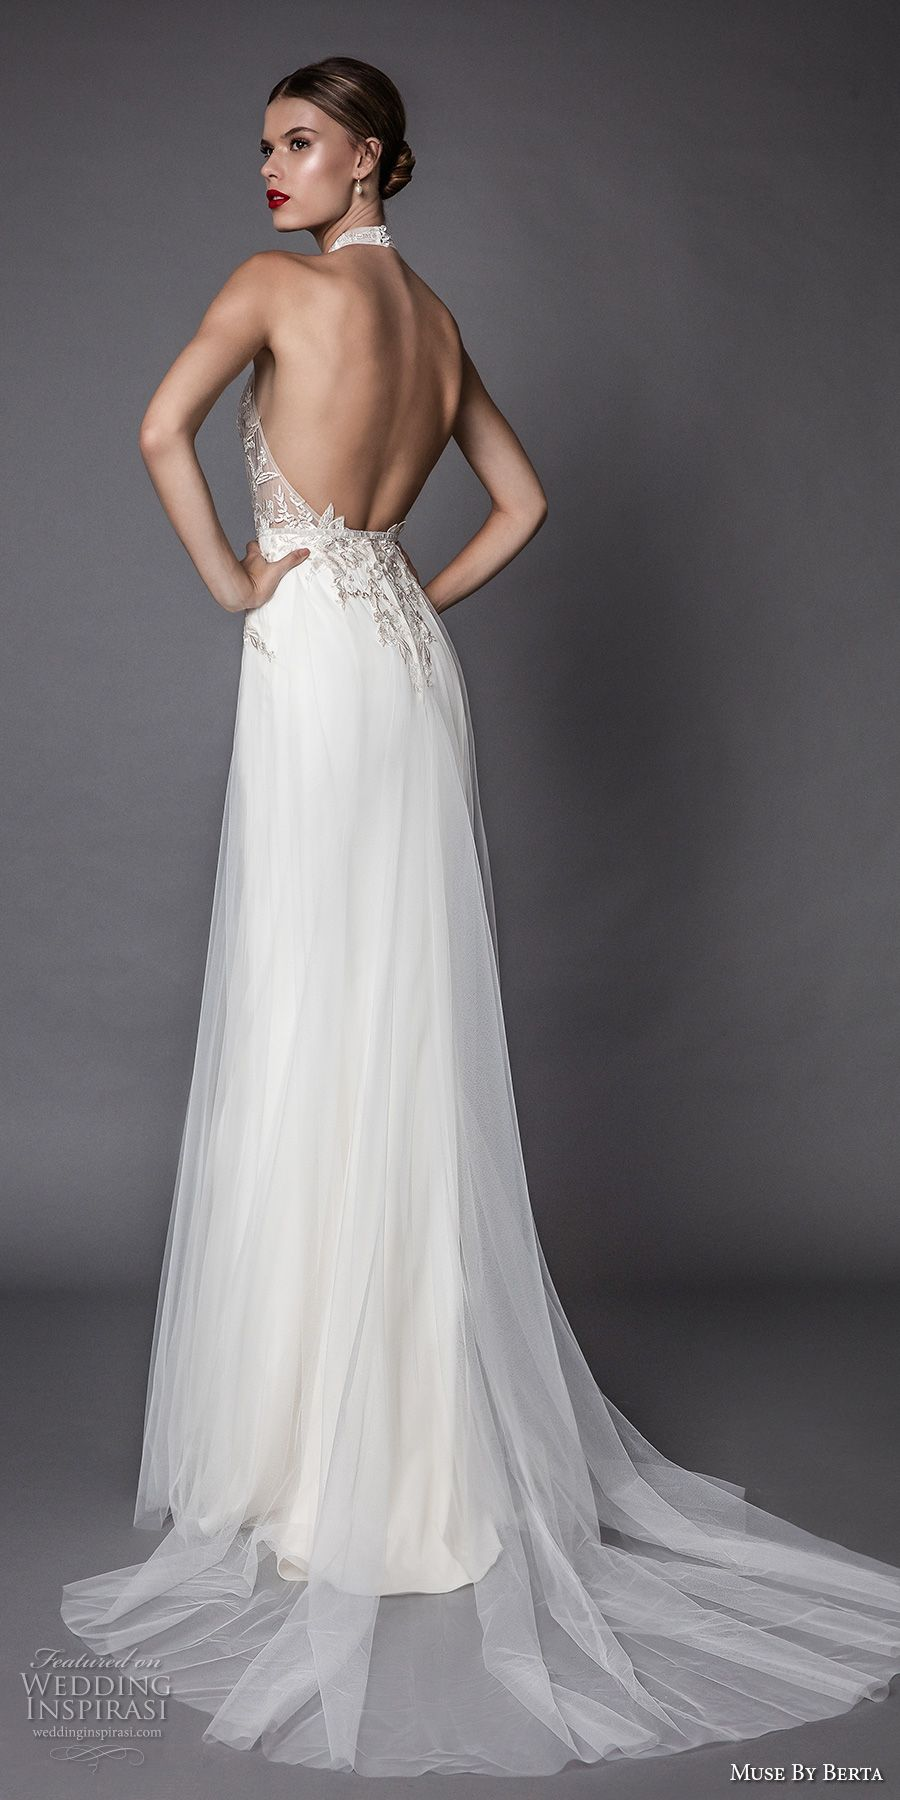 muse berta fall 2017 bridal sleeveless halter neck sheer heavily  embroidered bodice elegant sexy modified a line wedding dress open low back  sweep train ... 8832af22e